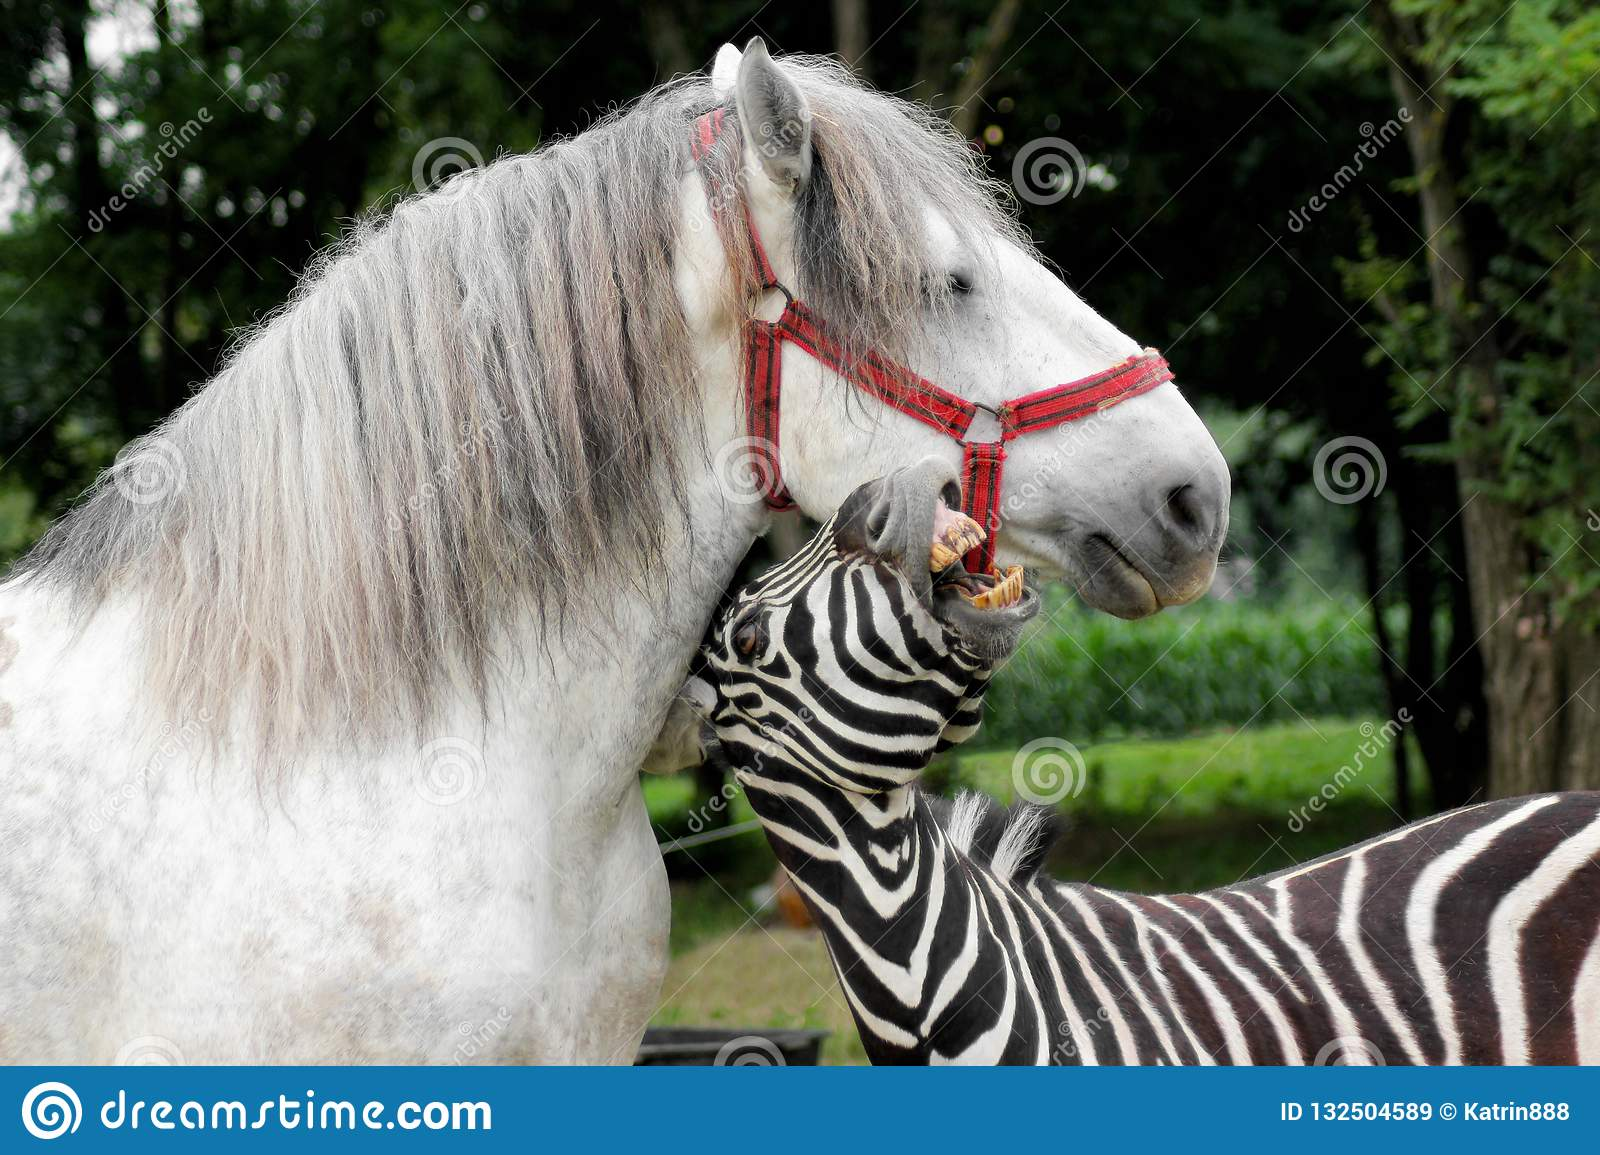 Zebra playing with the white horse. Portrait of the funny animals outdoor